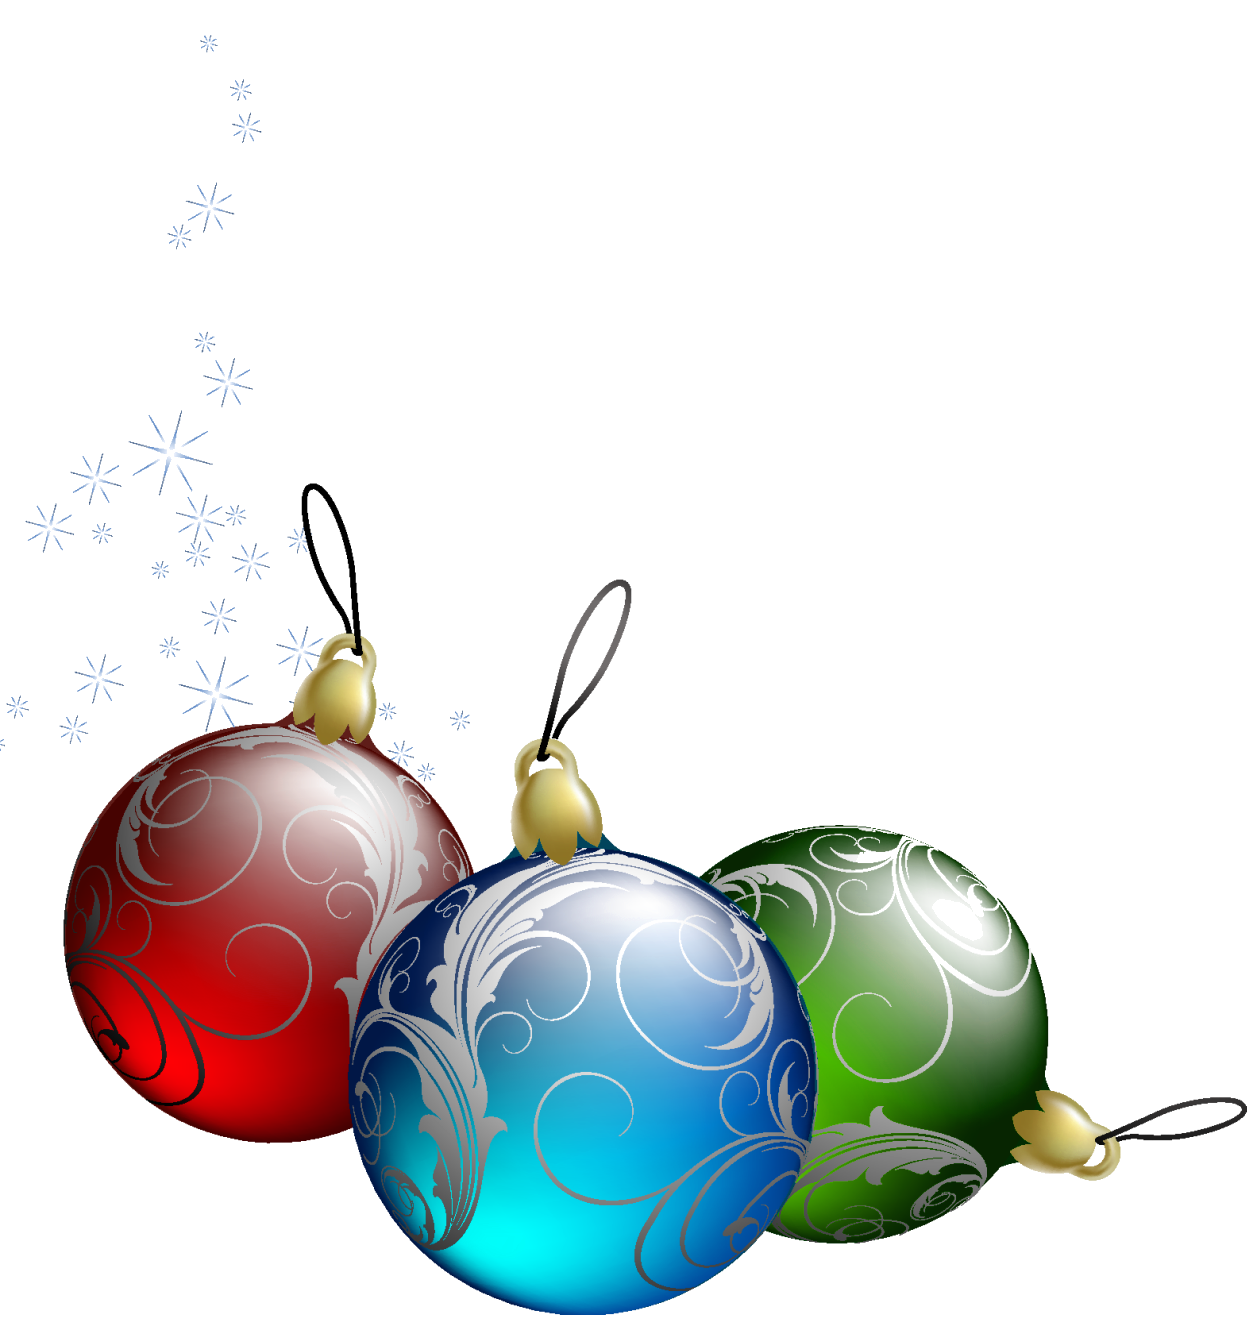 Christmas Ornament Free Pictures On Ornaments Clip Art Png.